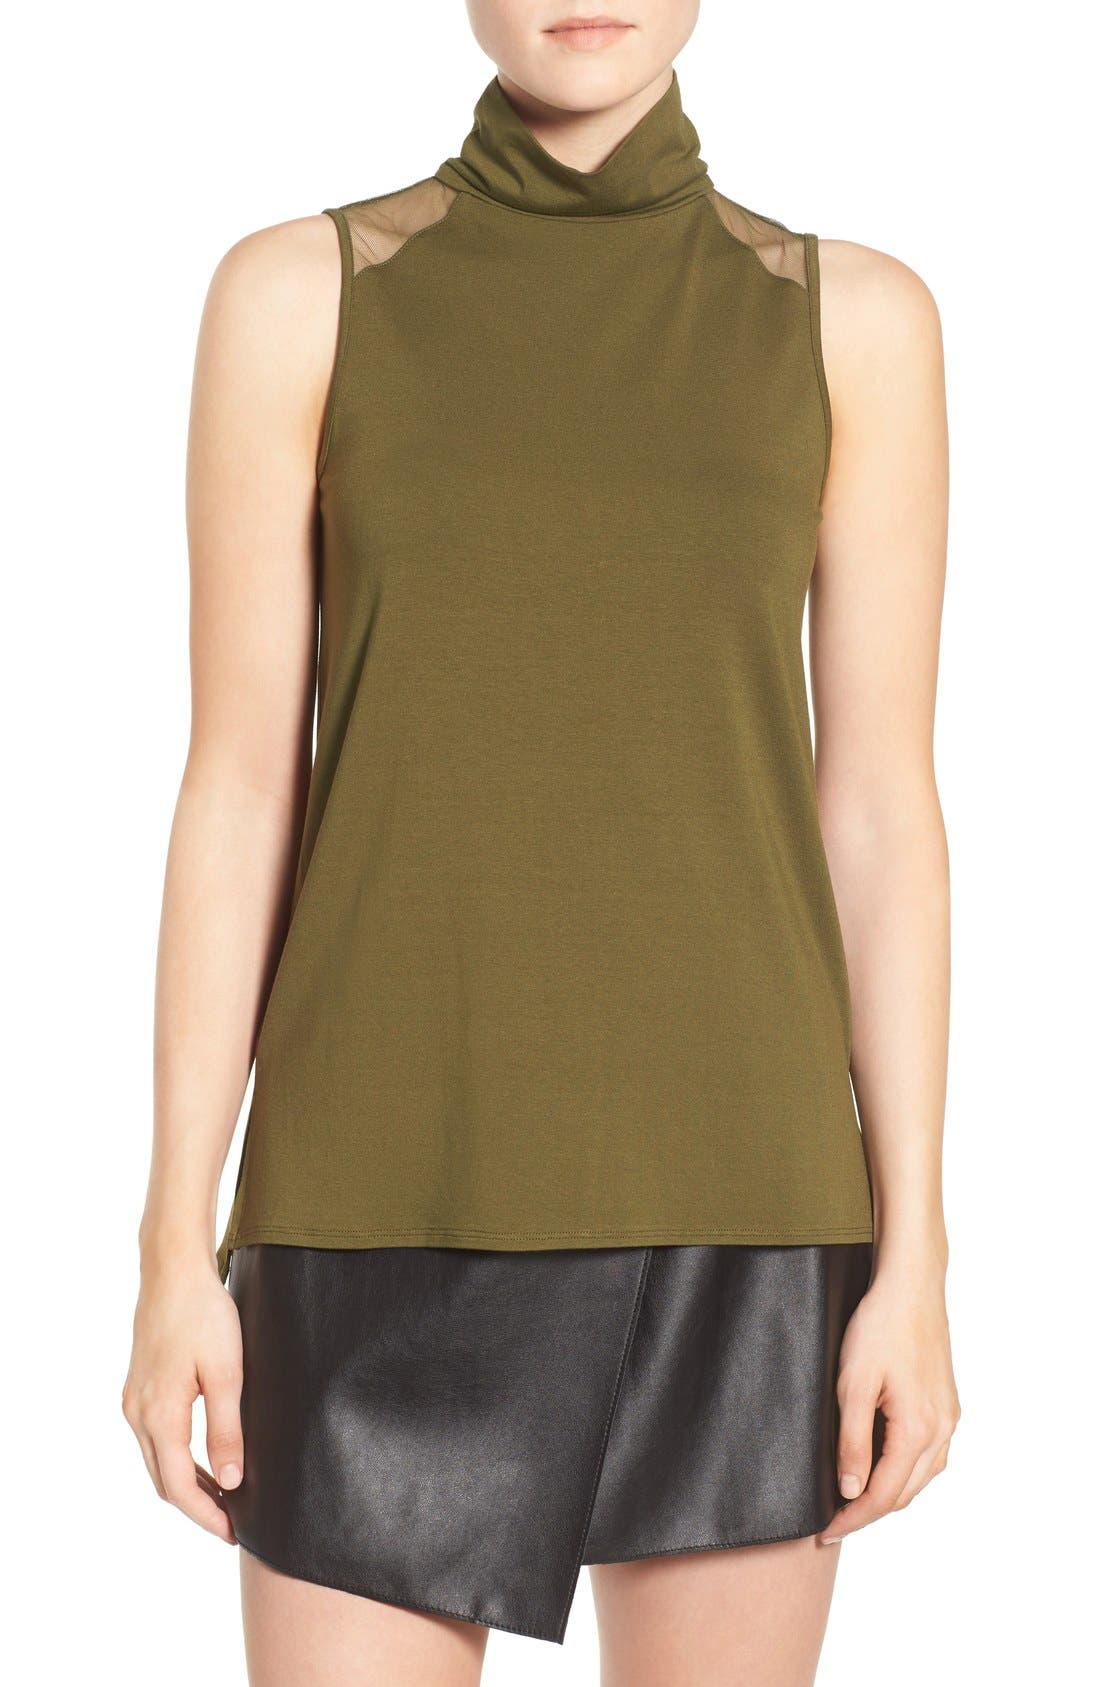 Alternate Image 1 Selected - 1.STATE High Neck Tank